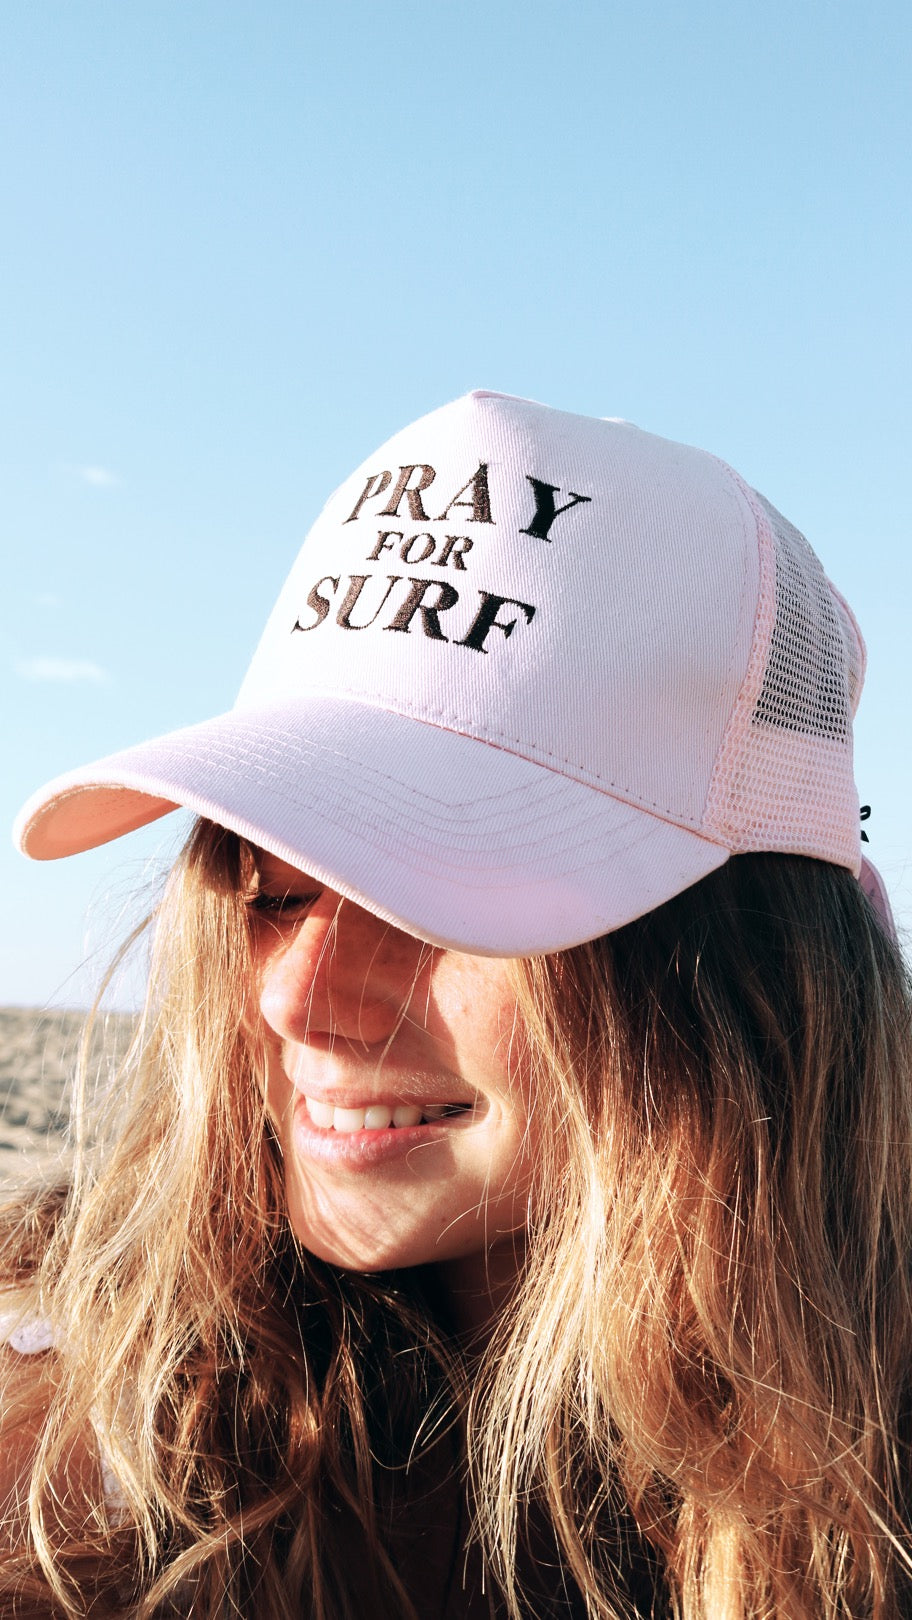 Pray for surf pink